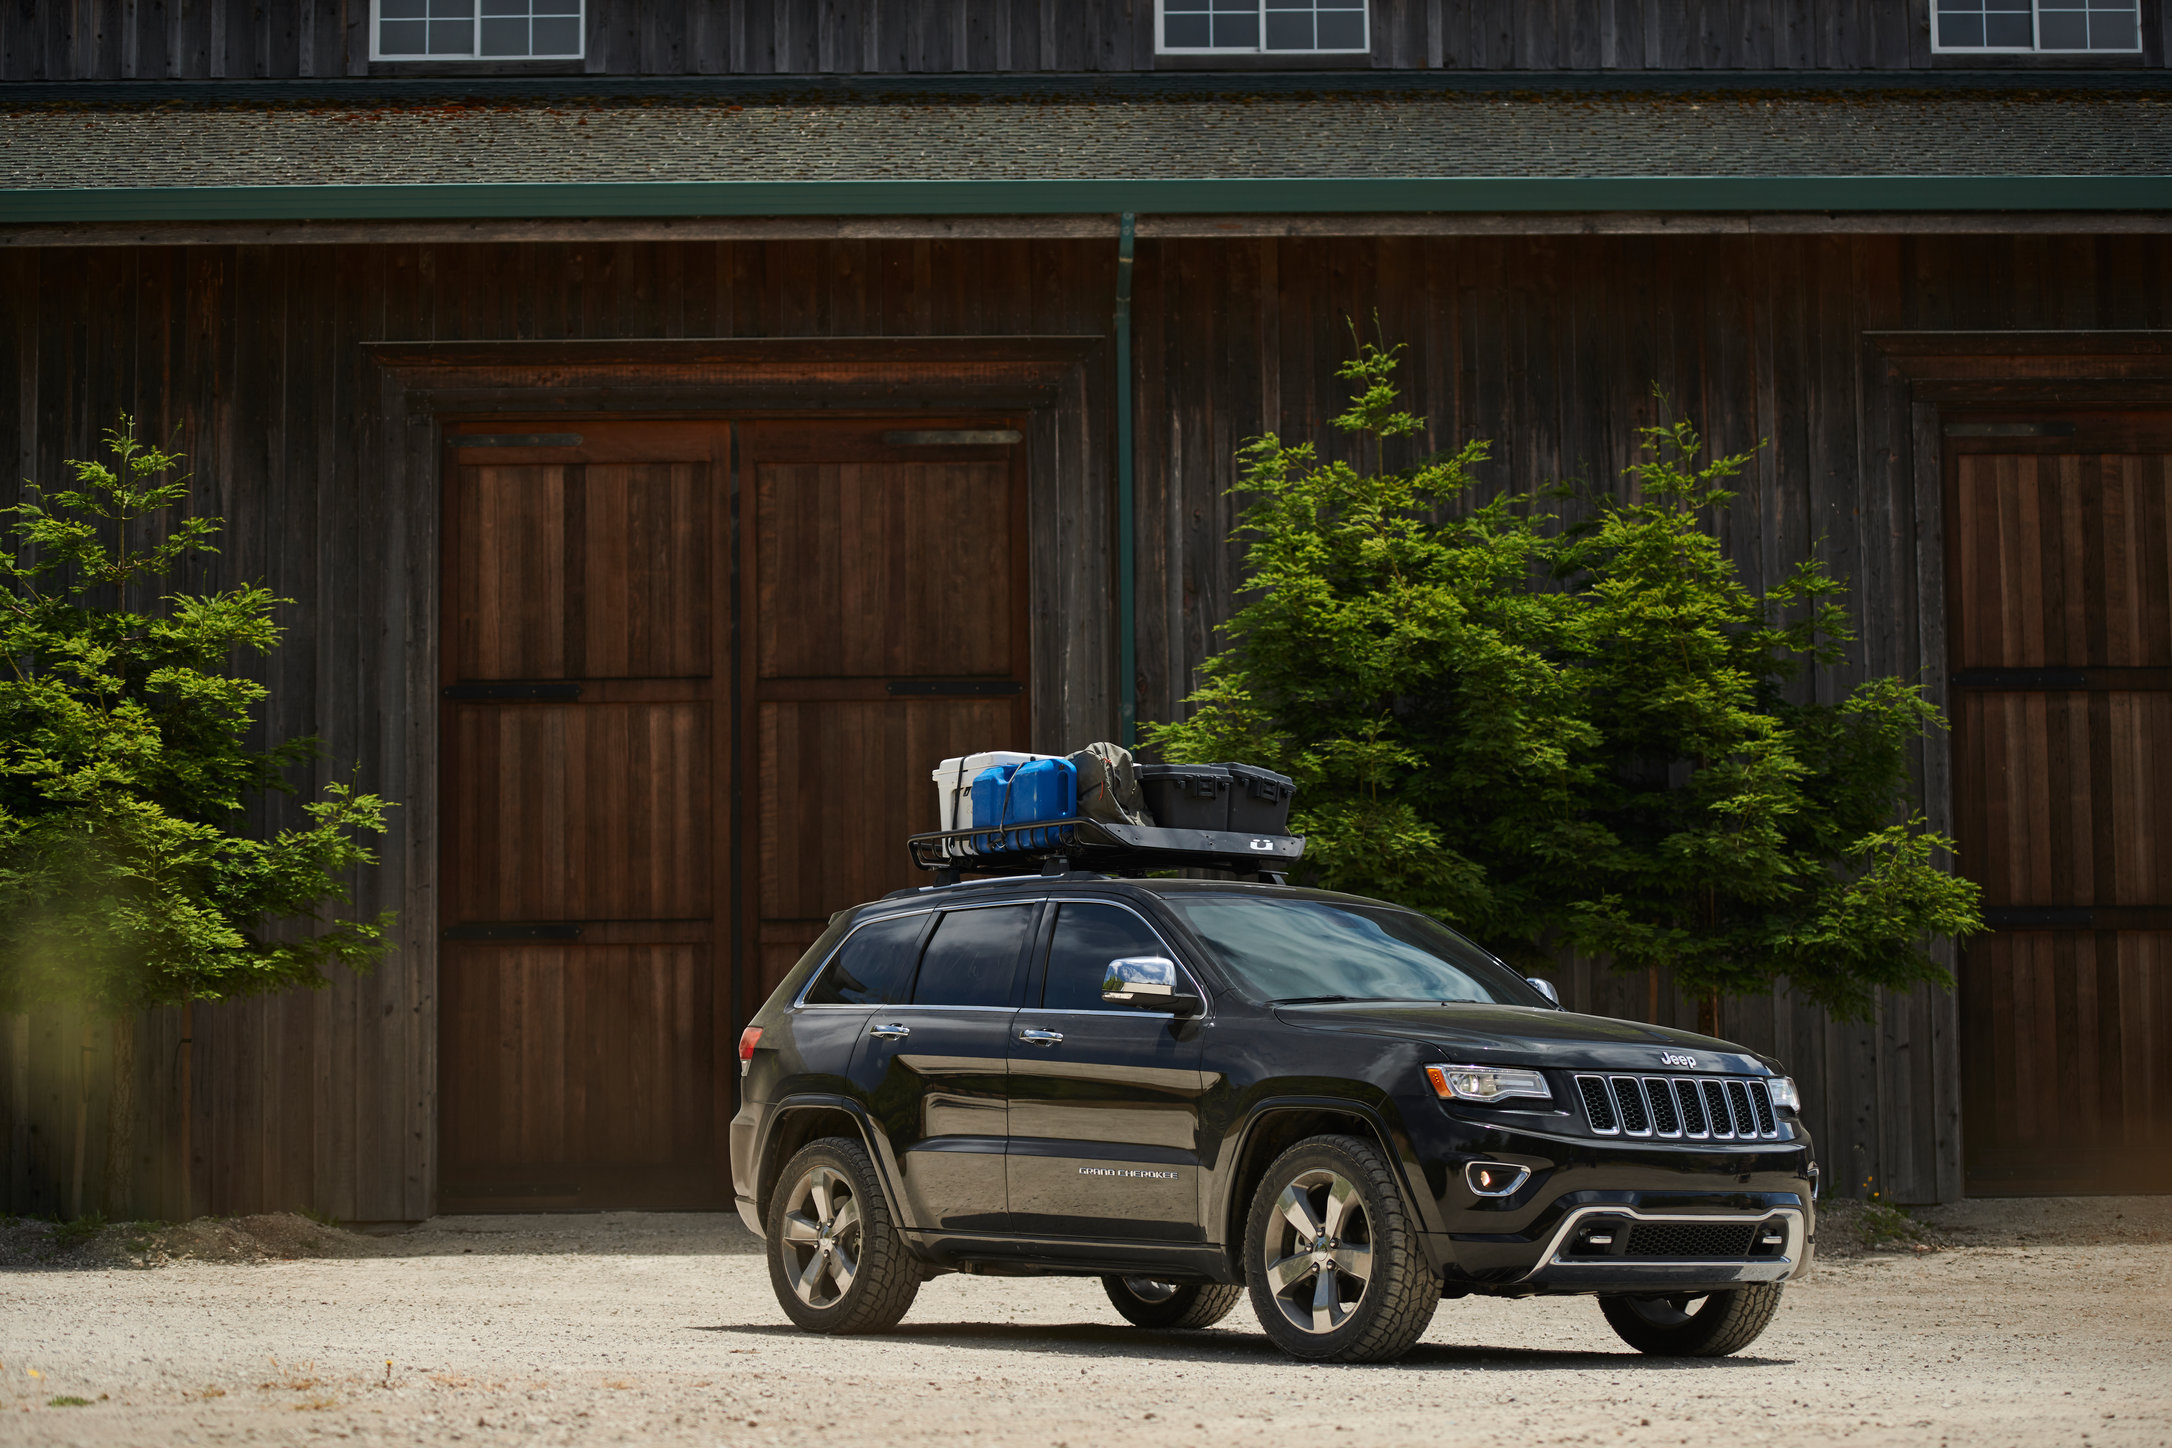 Motors_Jeep_Grand_Cherokee_Hero_2710.jpg